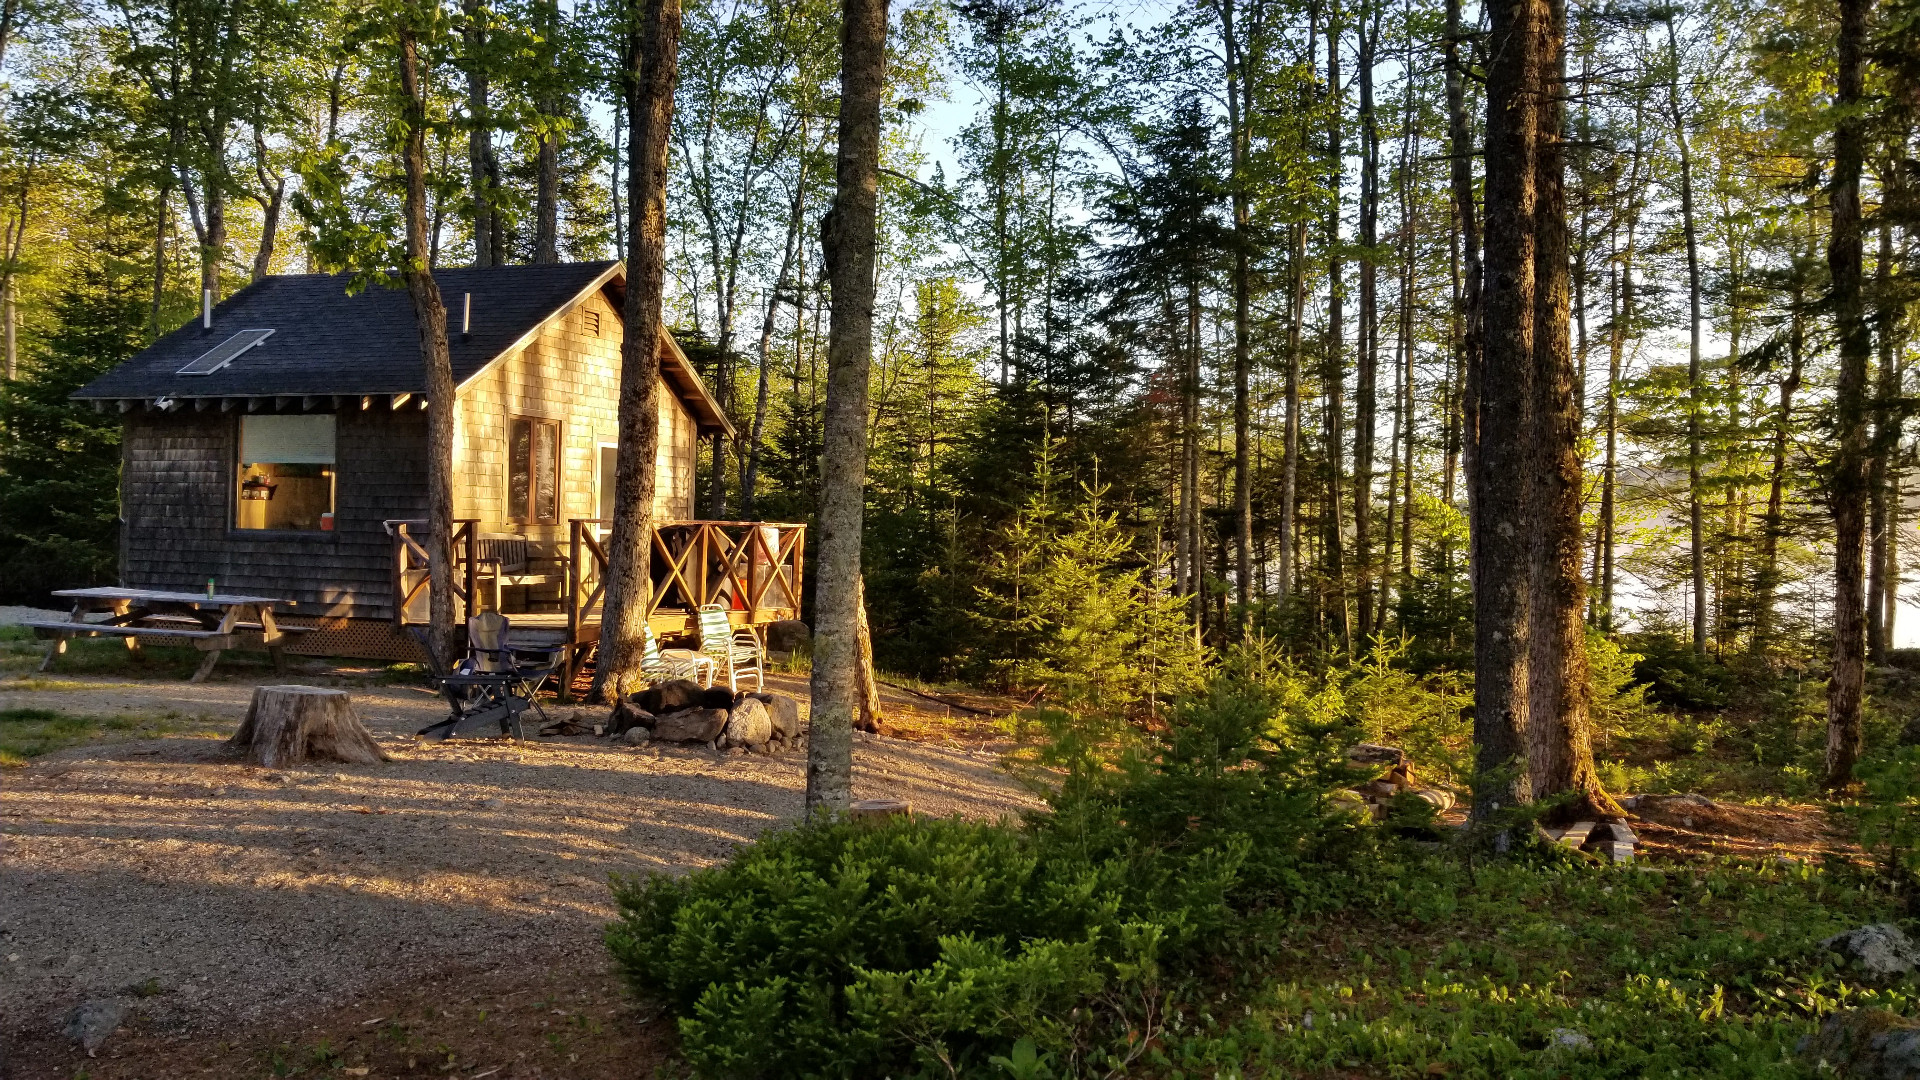 Away to Franklin: Off-the-grid cabin on Great Pond + lots of great hikes nearby